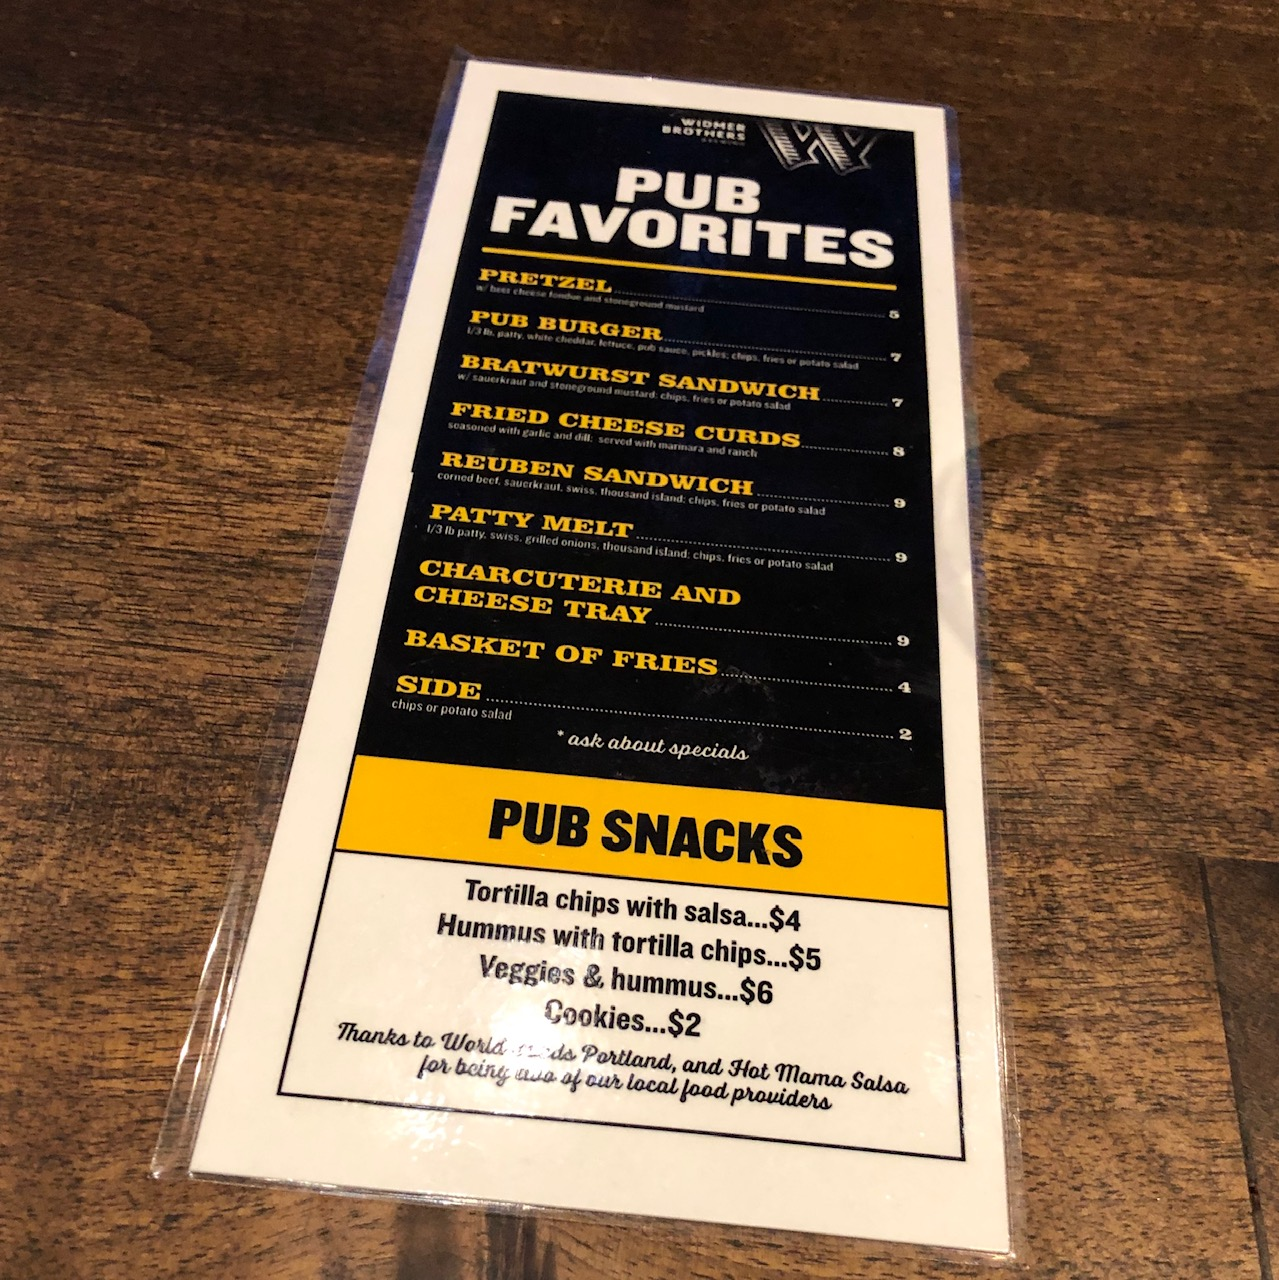 New food items on the Pub Menu at Widmer Brothers Pub.